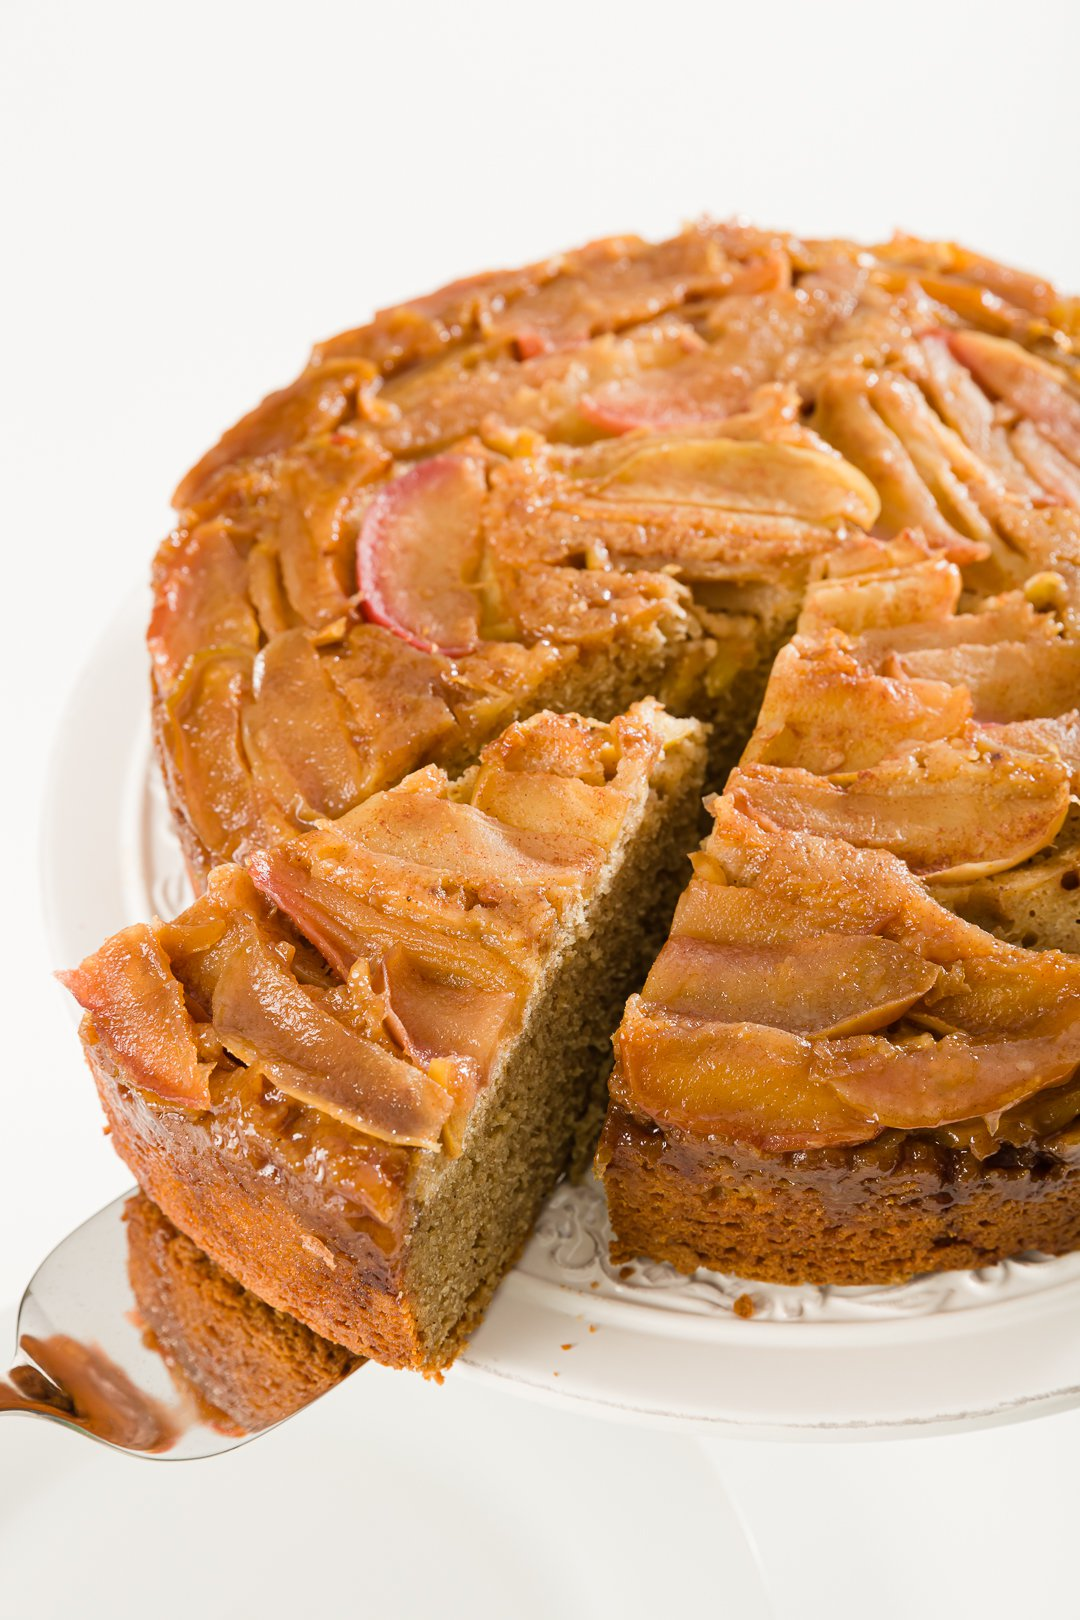 Apple upside-down cake with a slice pulled out